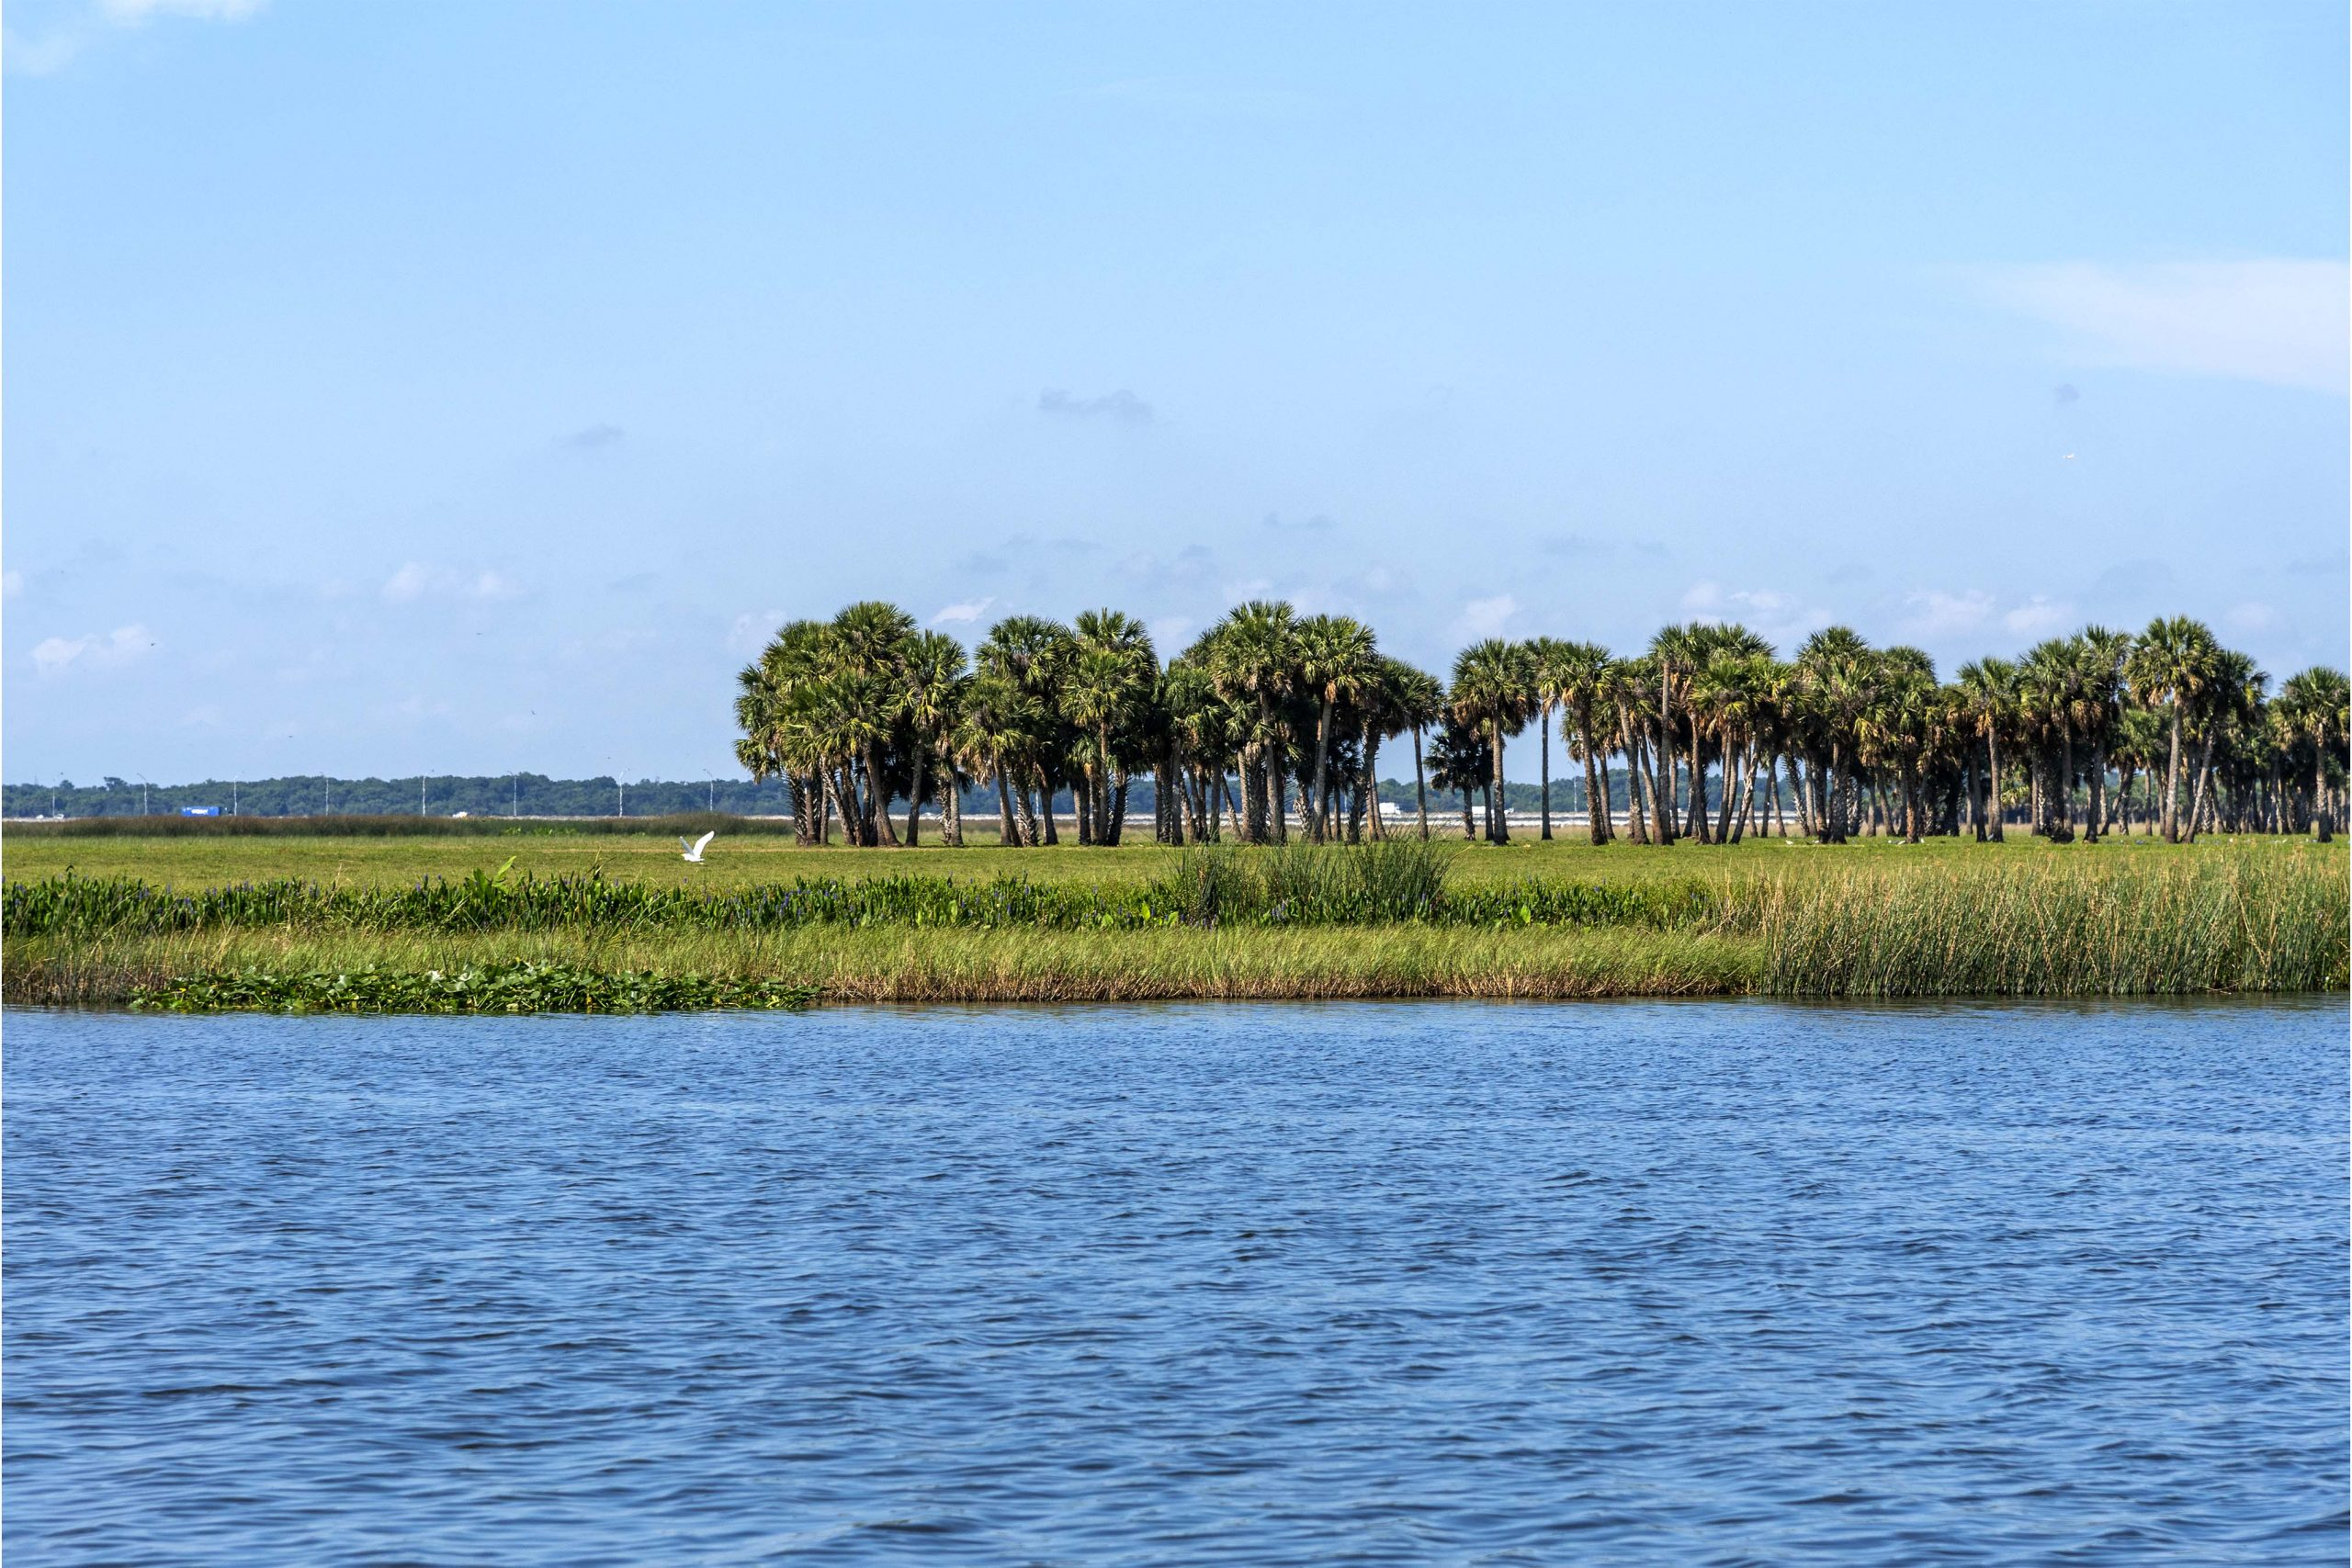 Marl Bed Point within the Lake Jesup Conservation Area in central Florida